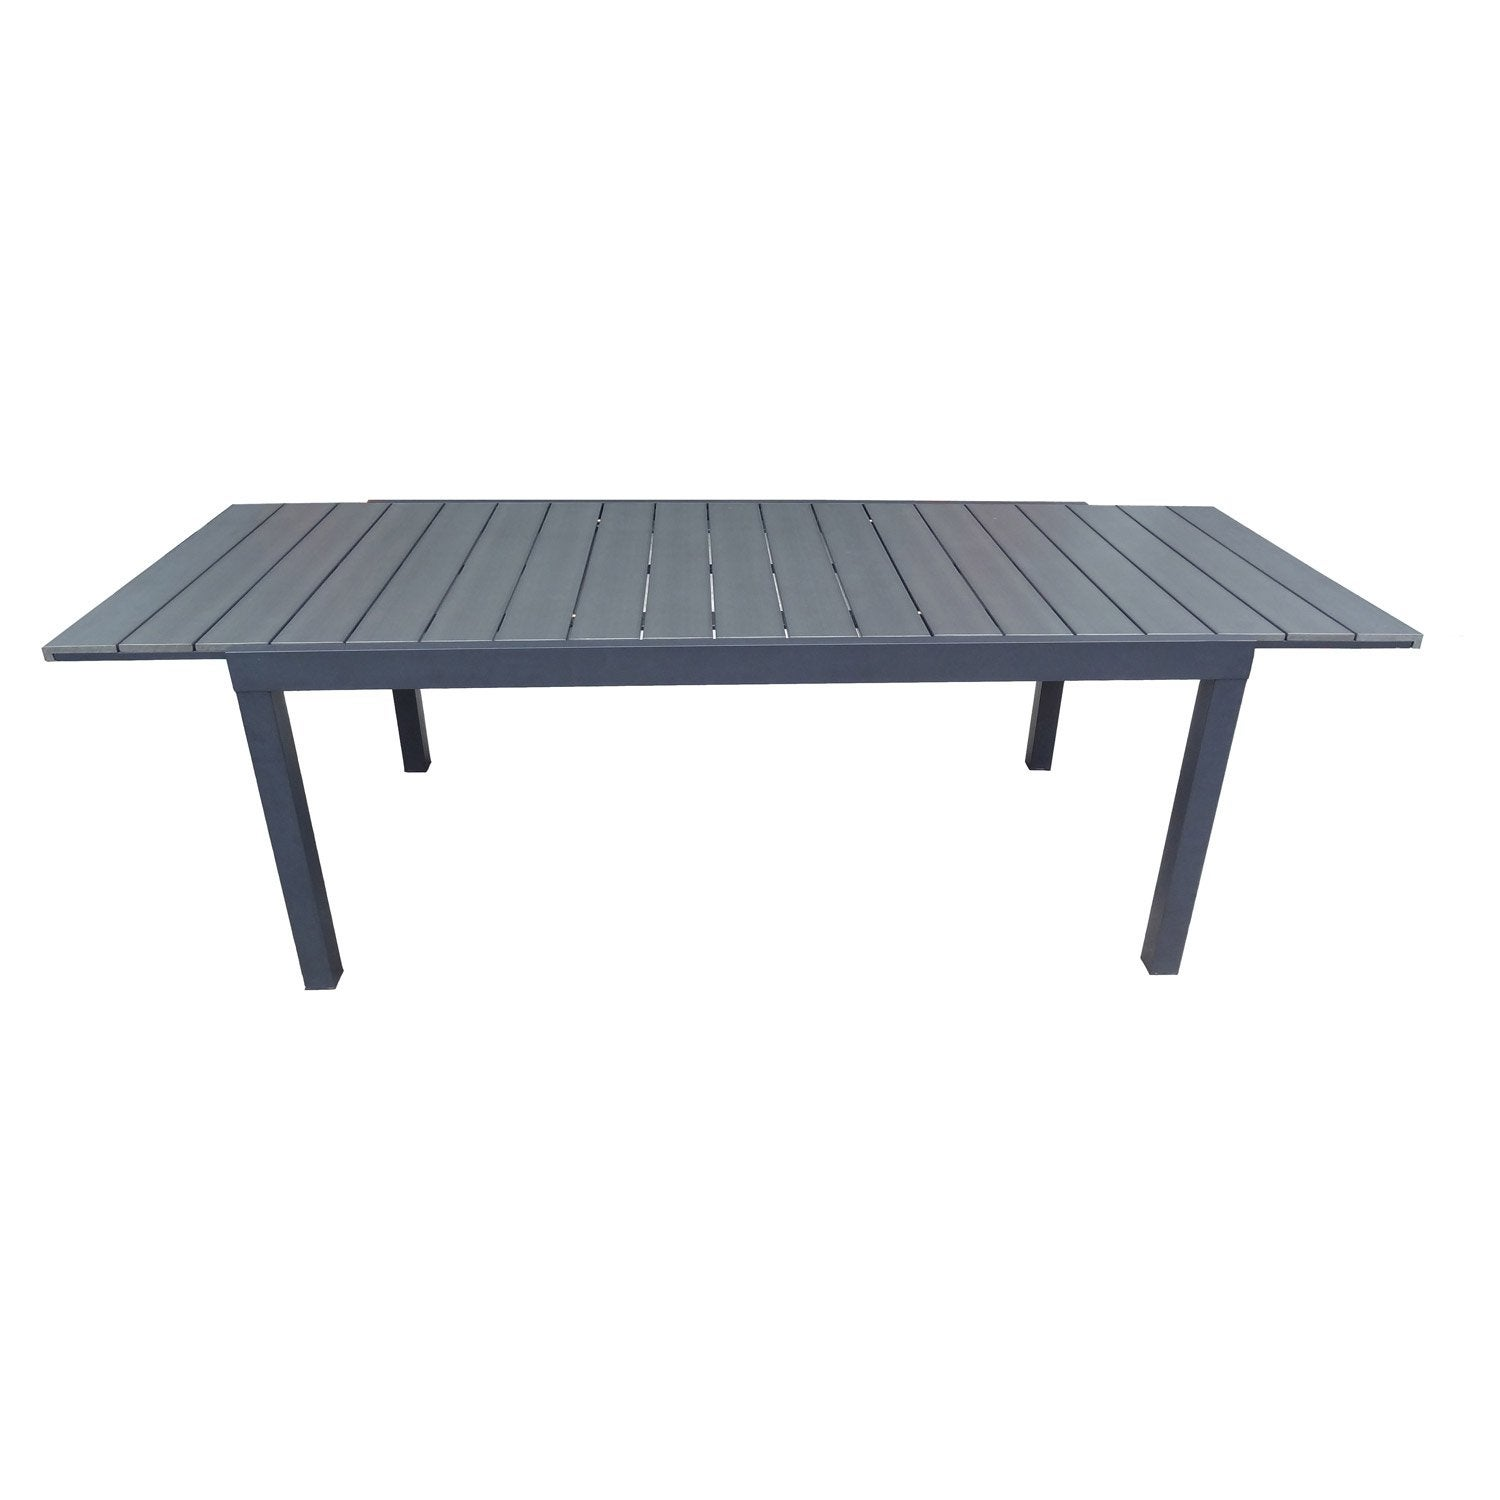 Table de jardin naterial pratt rectangulaire gris leroy for Leroy merlin table jardin